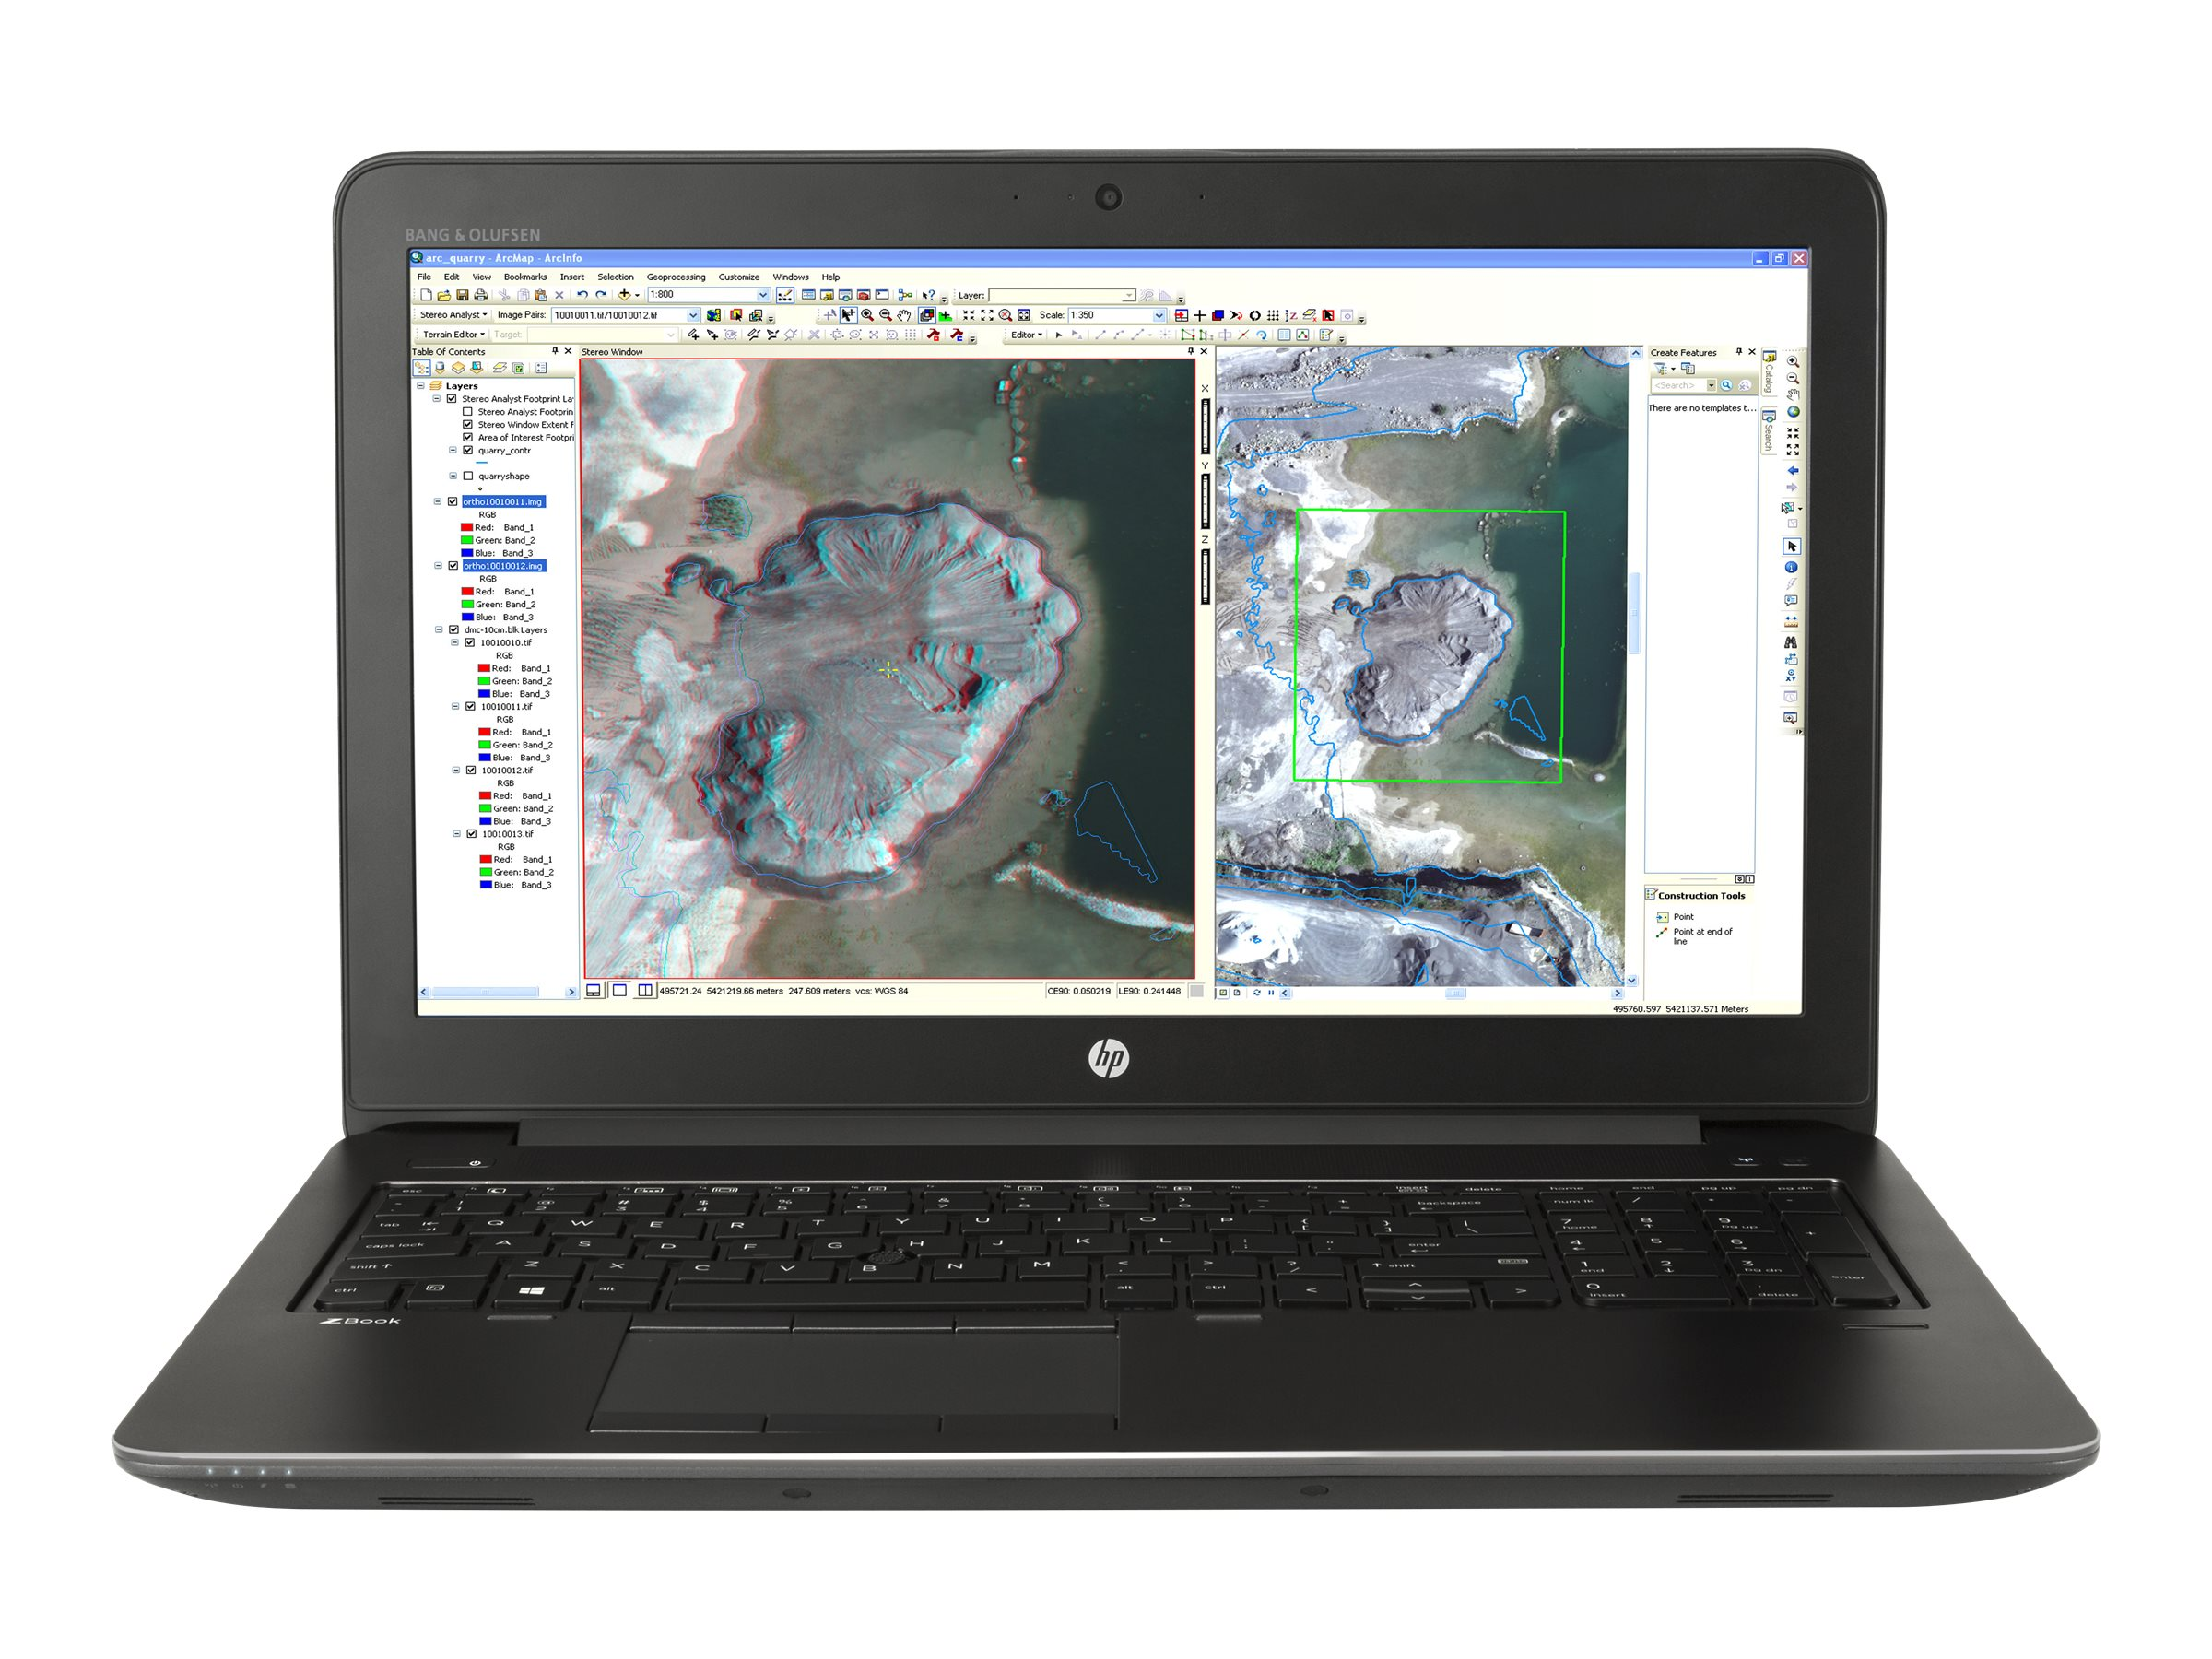 HP ZBook 15 G3 Core i7-6820HQ 2.7GHz 16GB 256GB SSD ac BT FR WC 9C M2000M 15.6 FHD W7P64-W10P